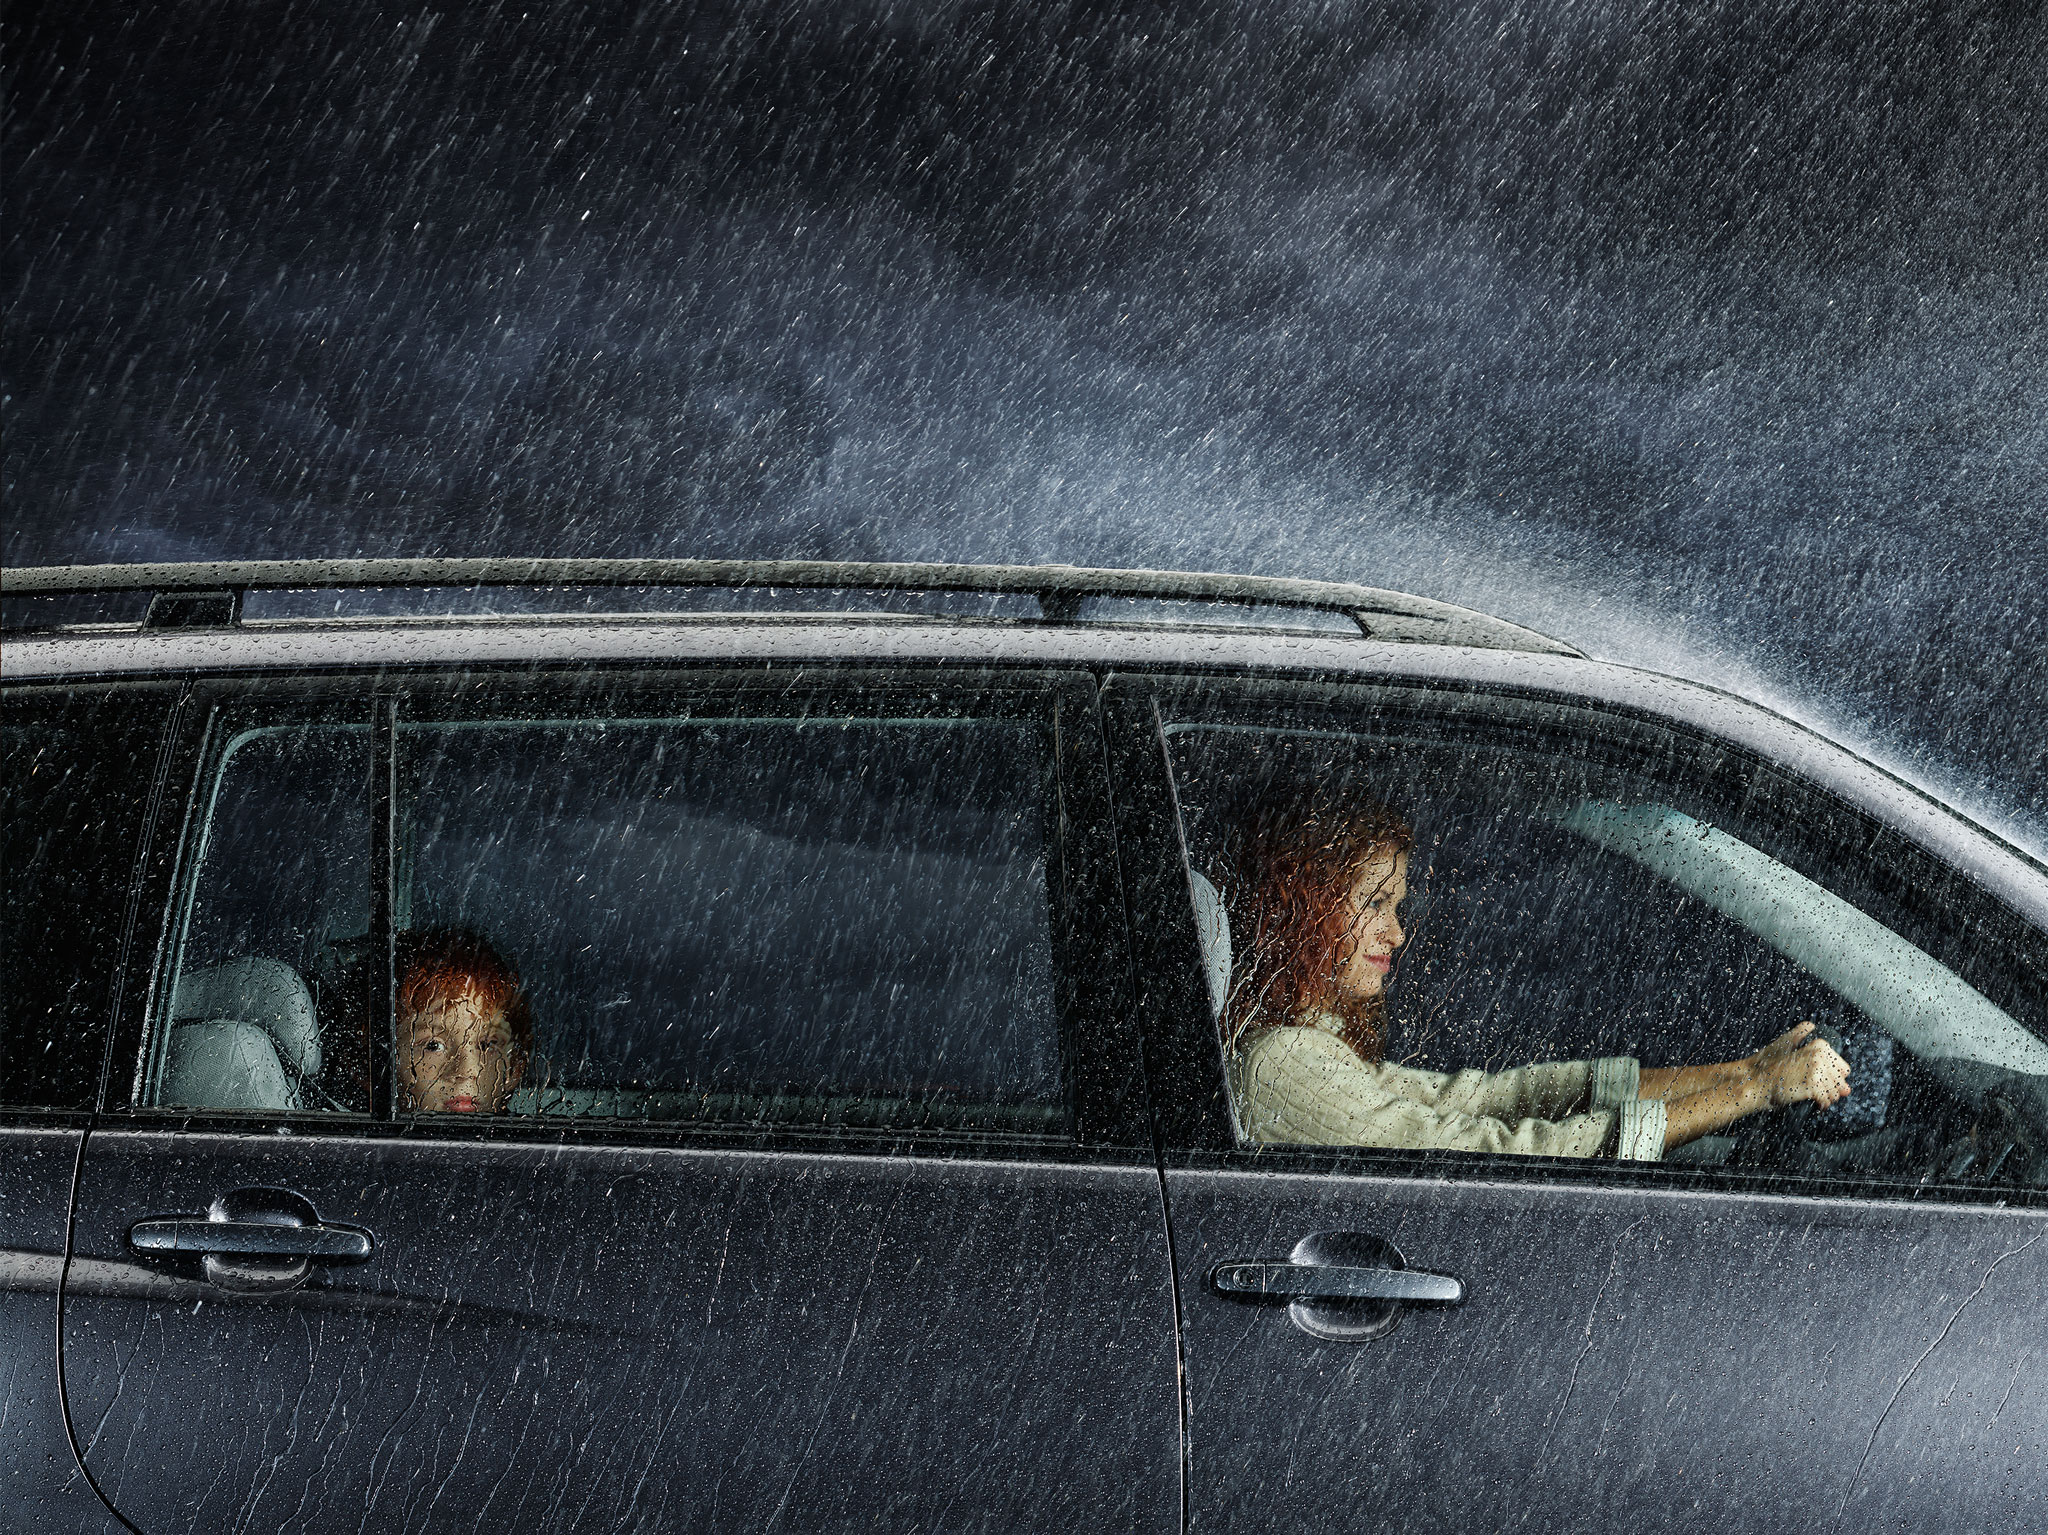 Toyota | Star Safety | studio photography of car in rain storm  | Glen Wexler | Advertising Photographer